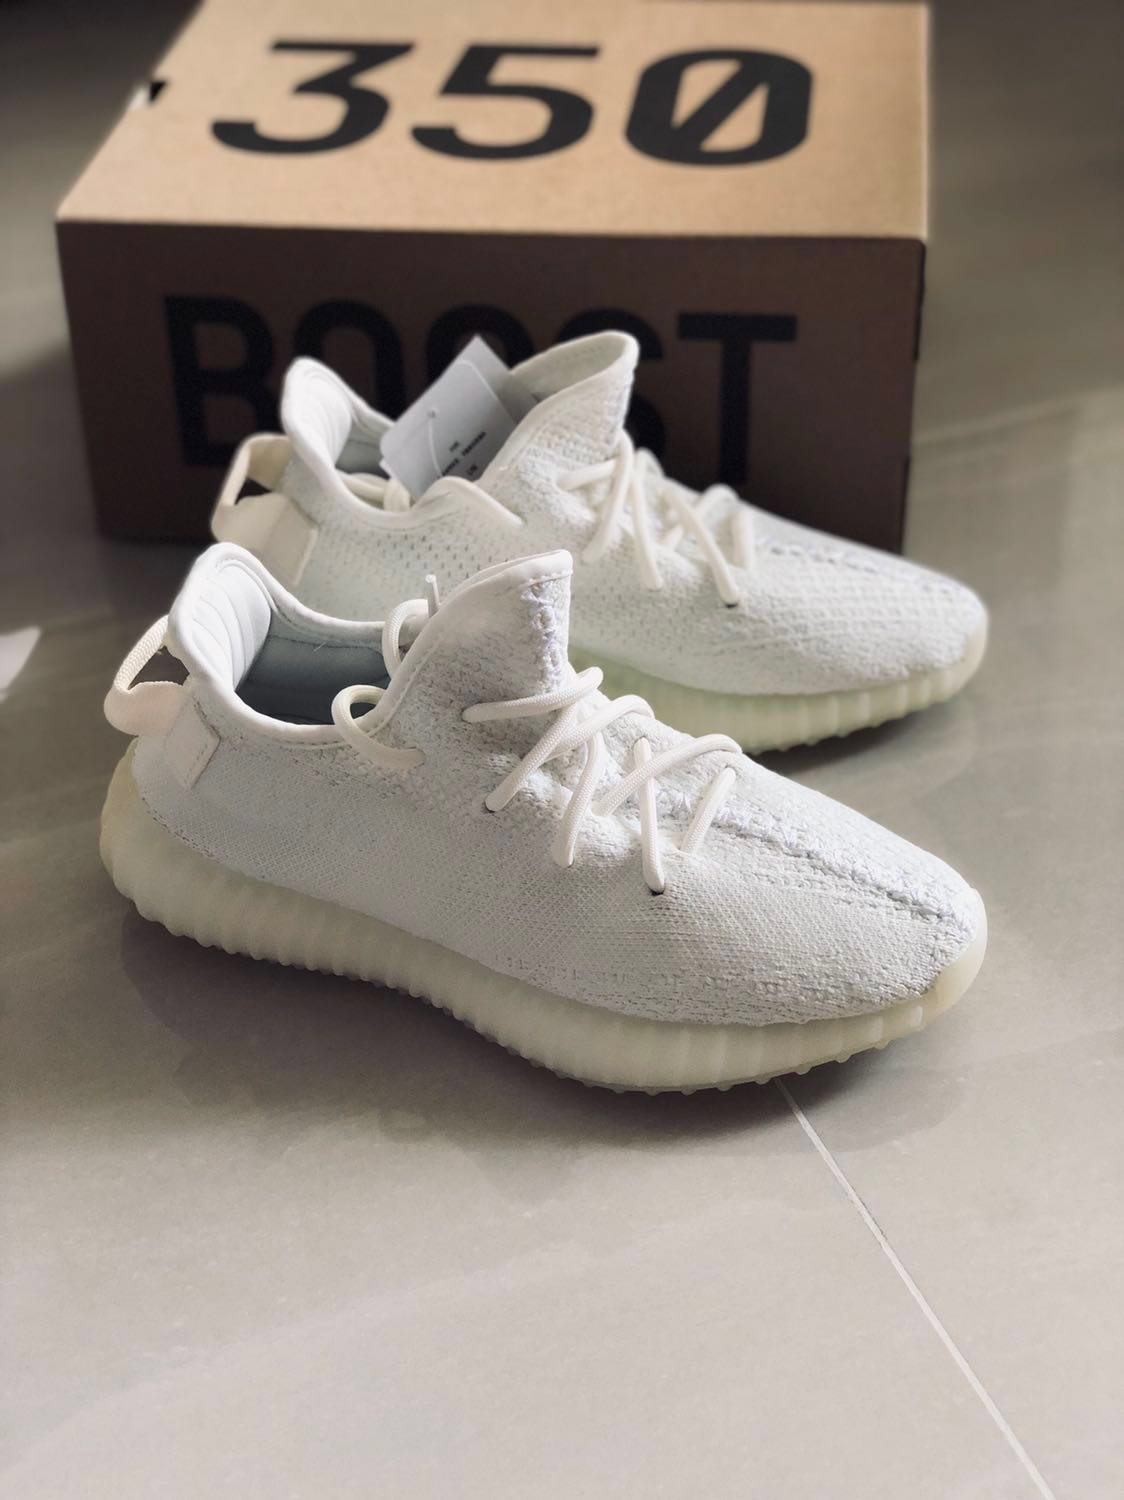 20bbcea5188 Yeezy Boost 350 Cream Uk 4.5